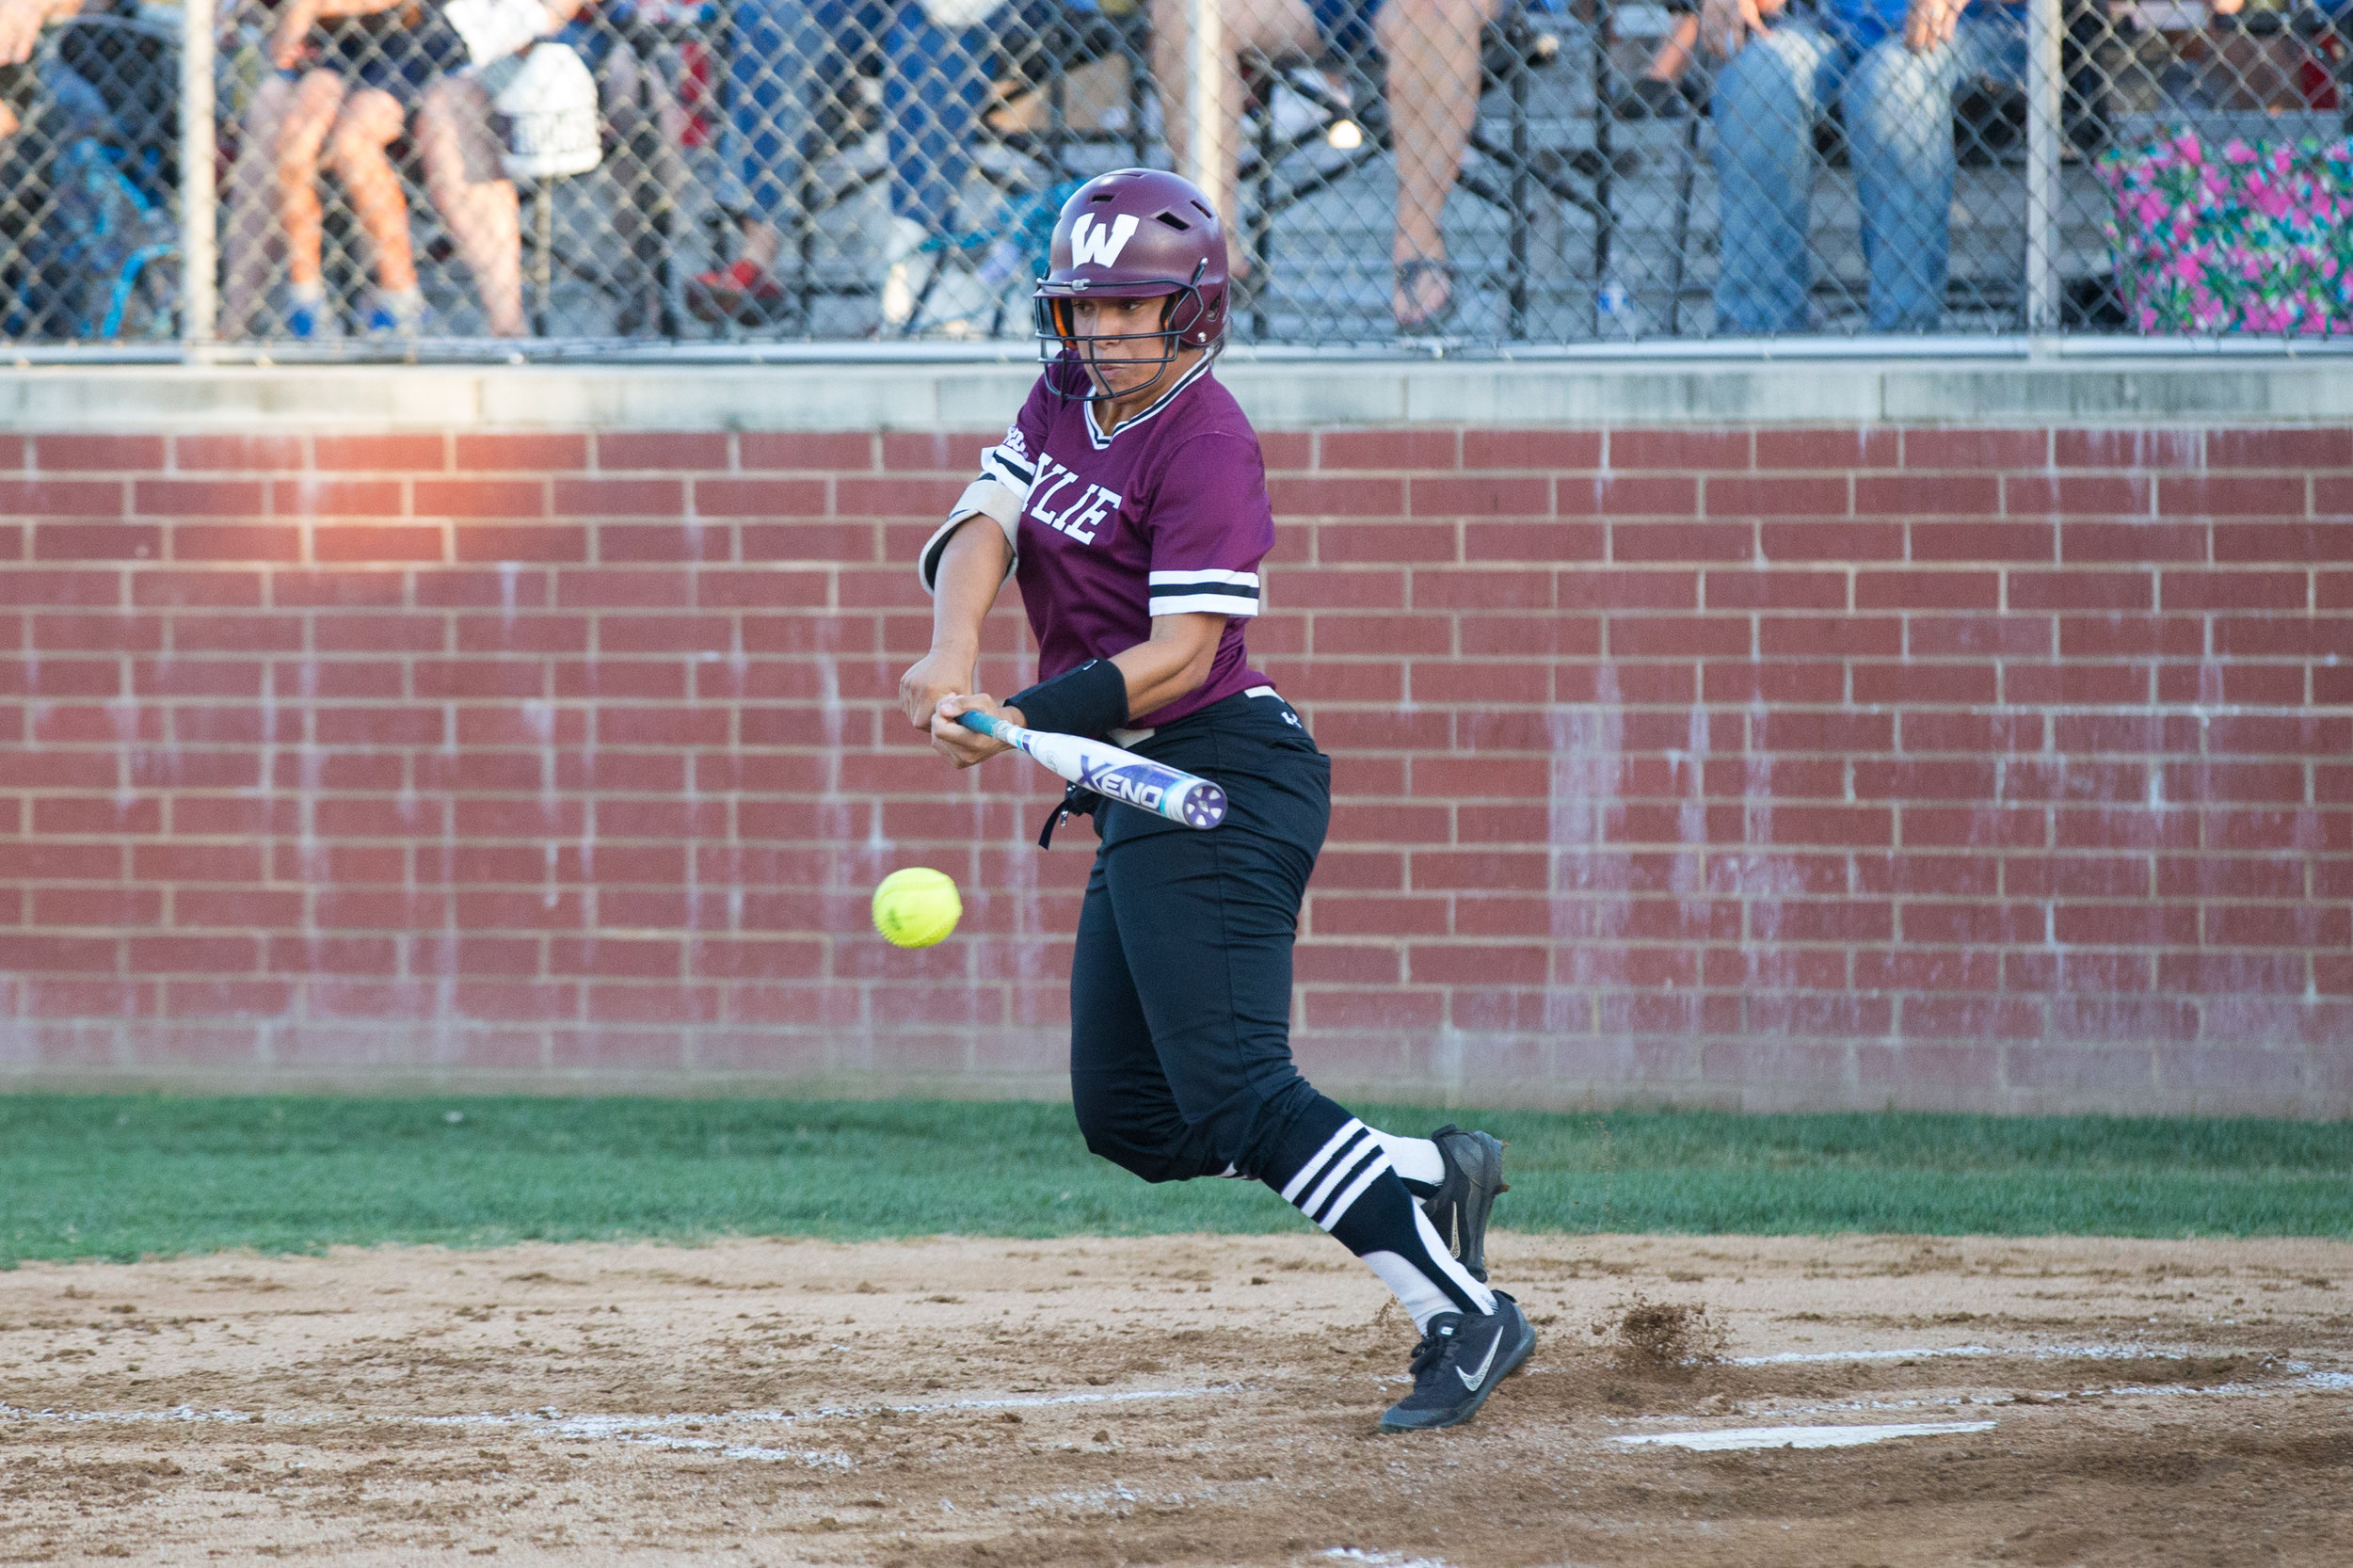 5_18 Wylie Softball-140.jpg